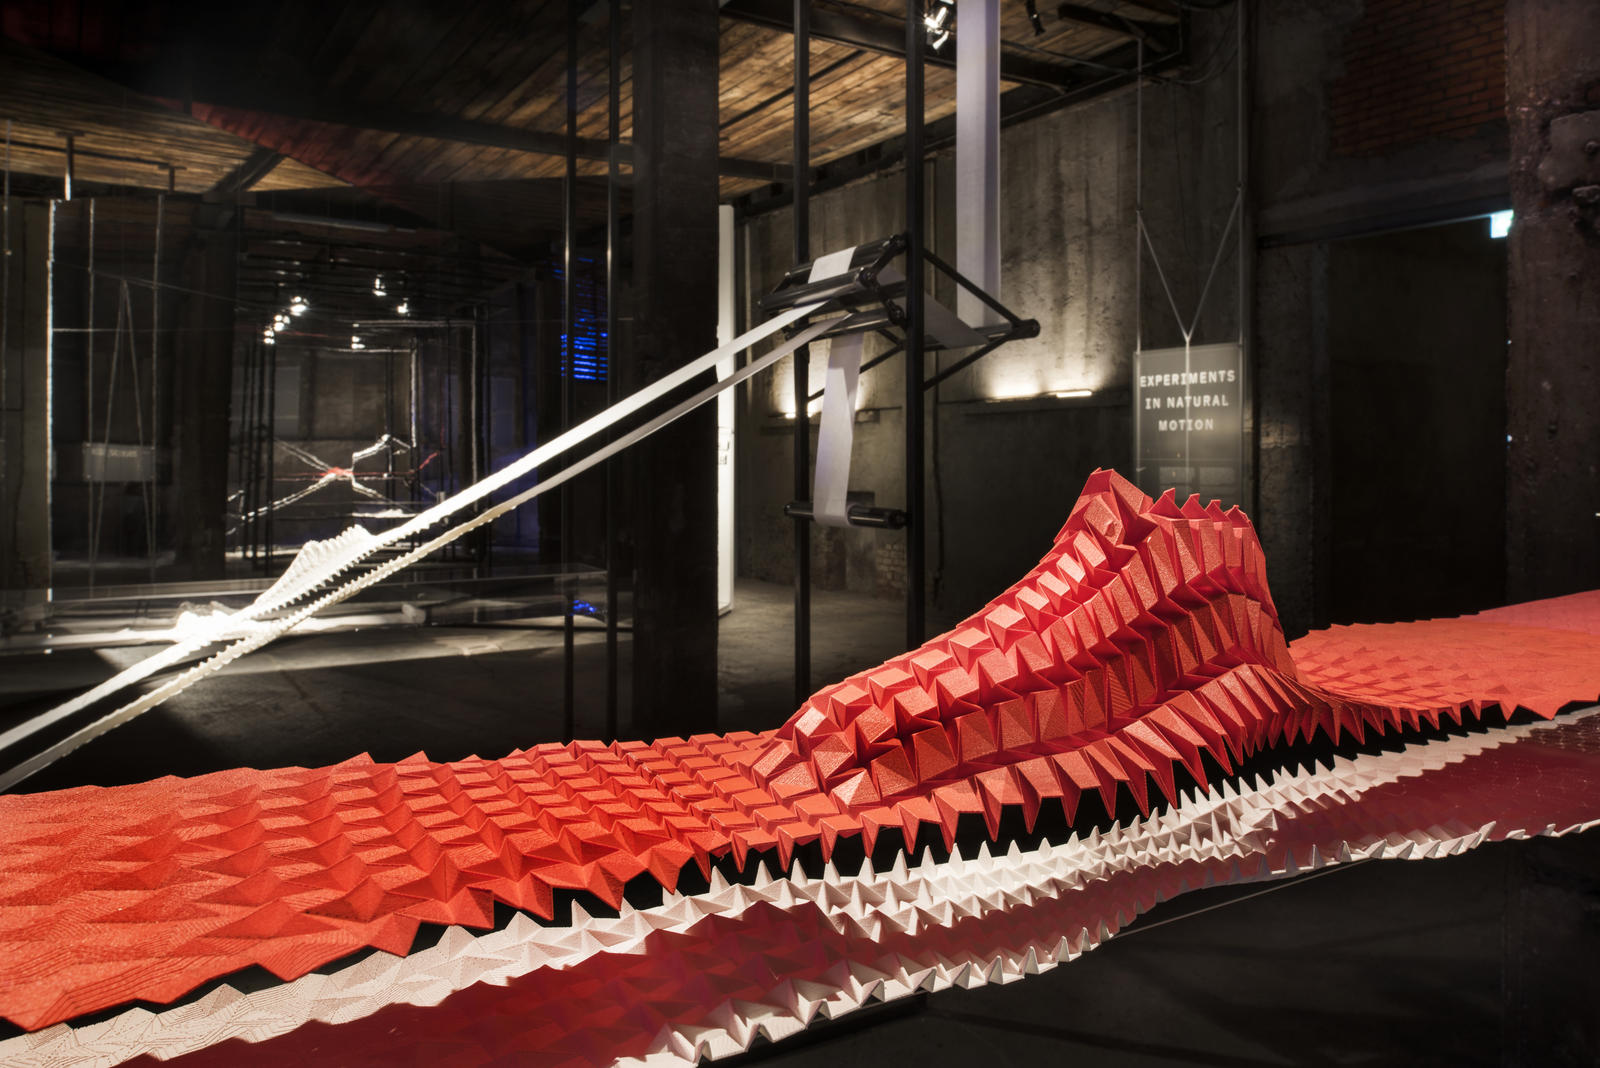 Inside the nature of motion at milano design week nike news for Basketball store milano